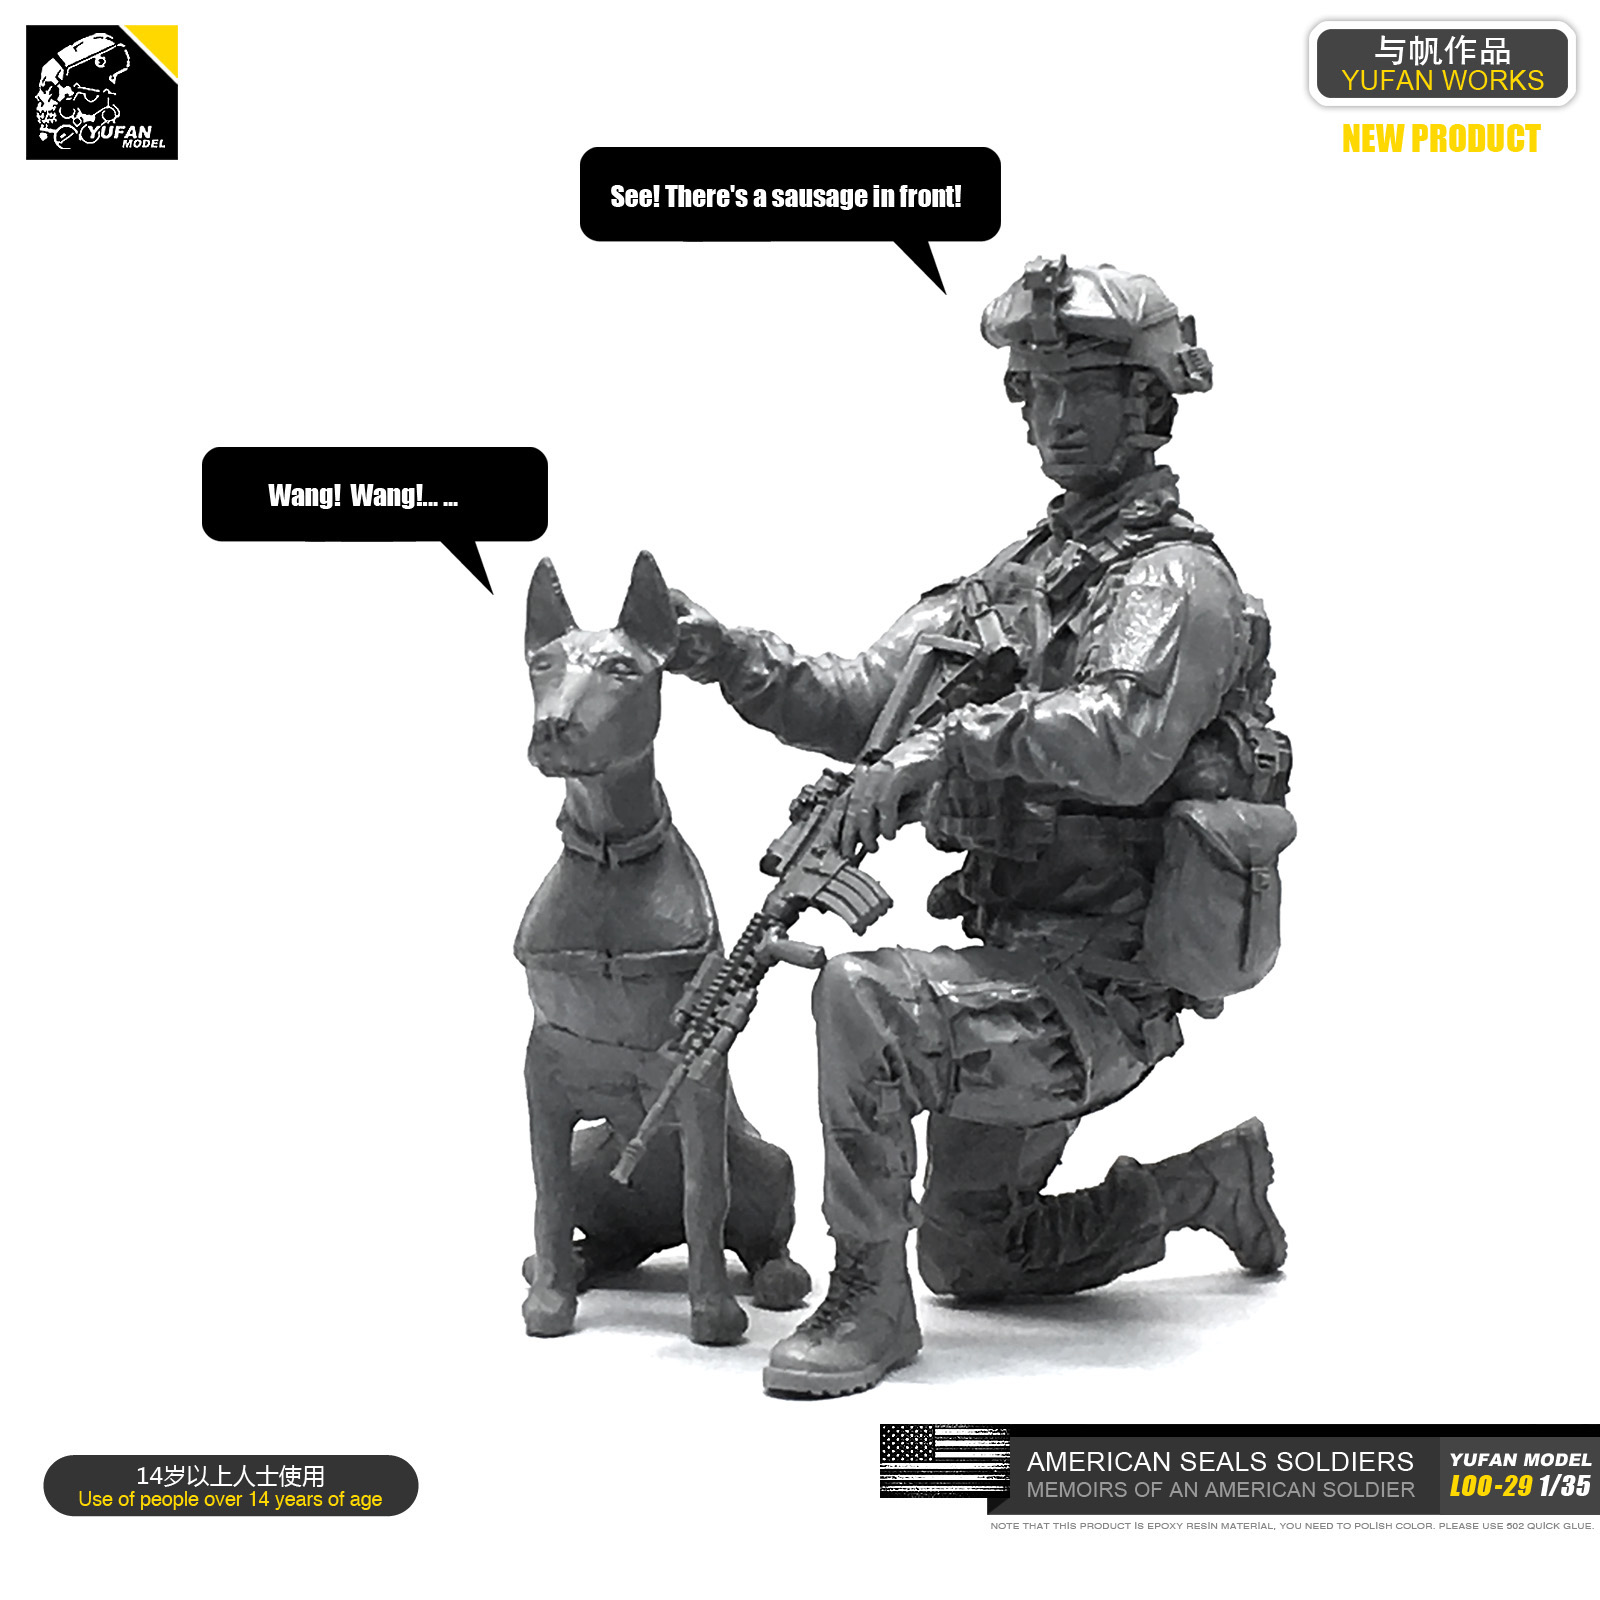 1/35 Resin Kits Figure US Marine Corps And Dog Resin Soldiers Sefl-assembled LOO-29